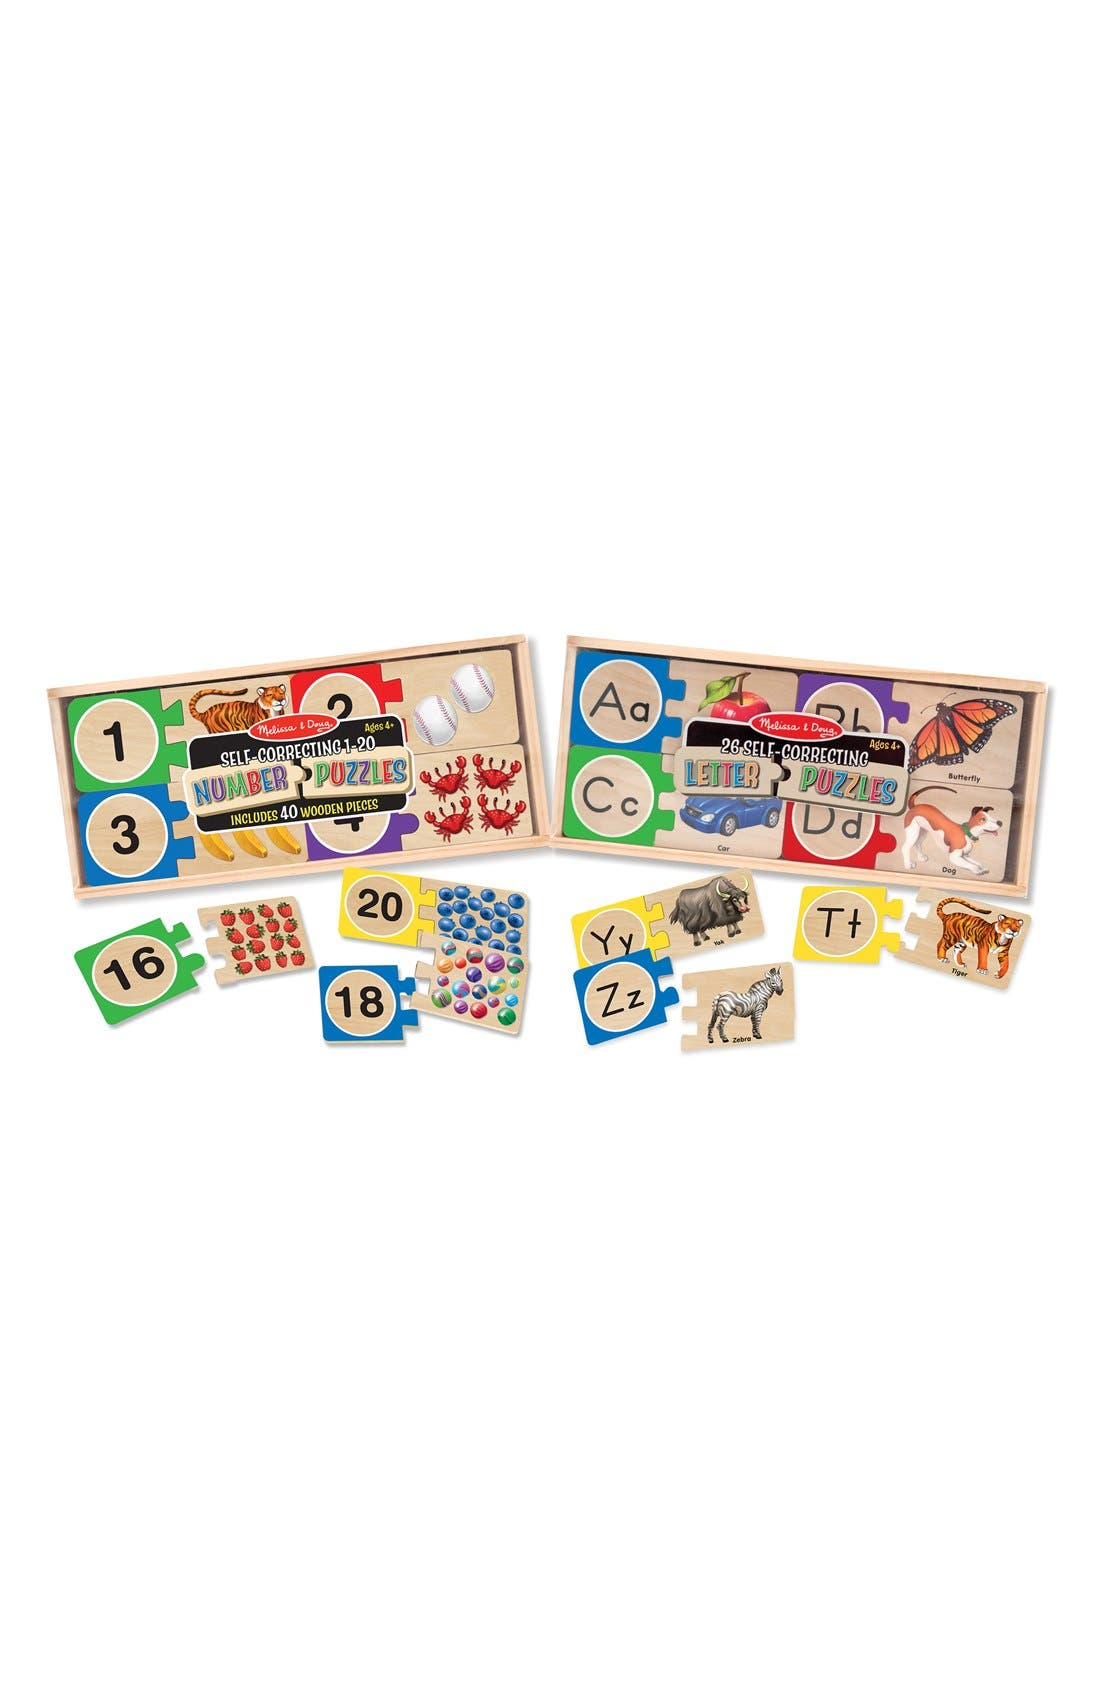 Alternate Image 1 Selected - Melissa & Doug Letters and Numbers Puzzles (Set of 2)